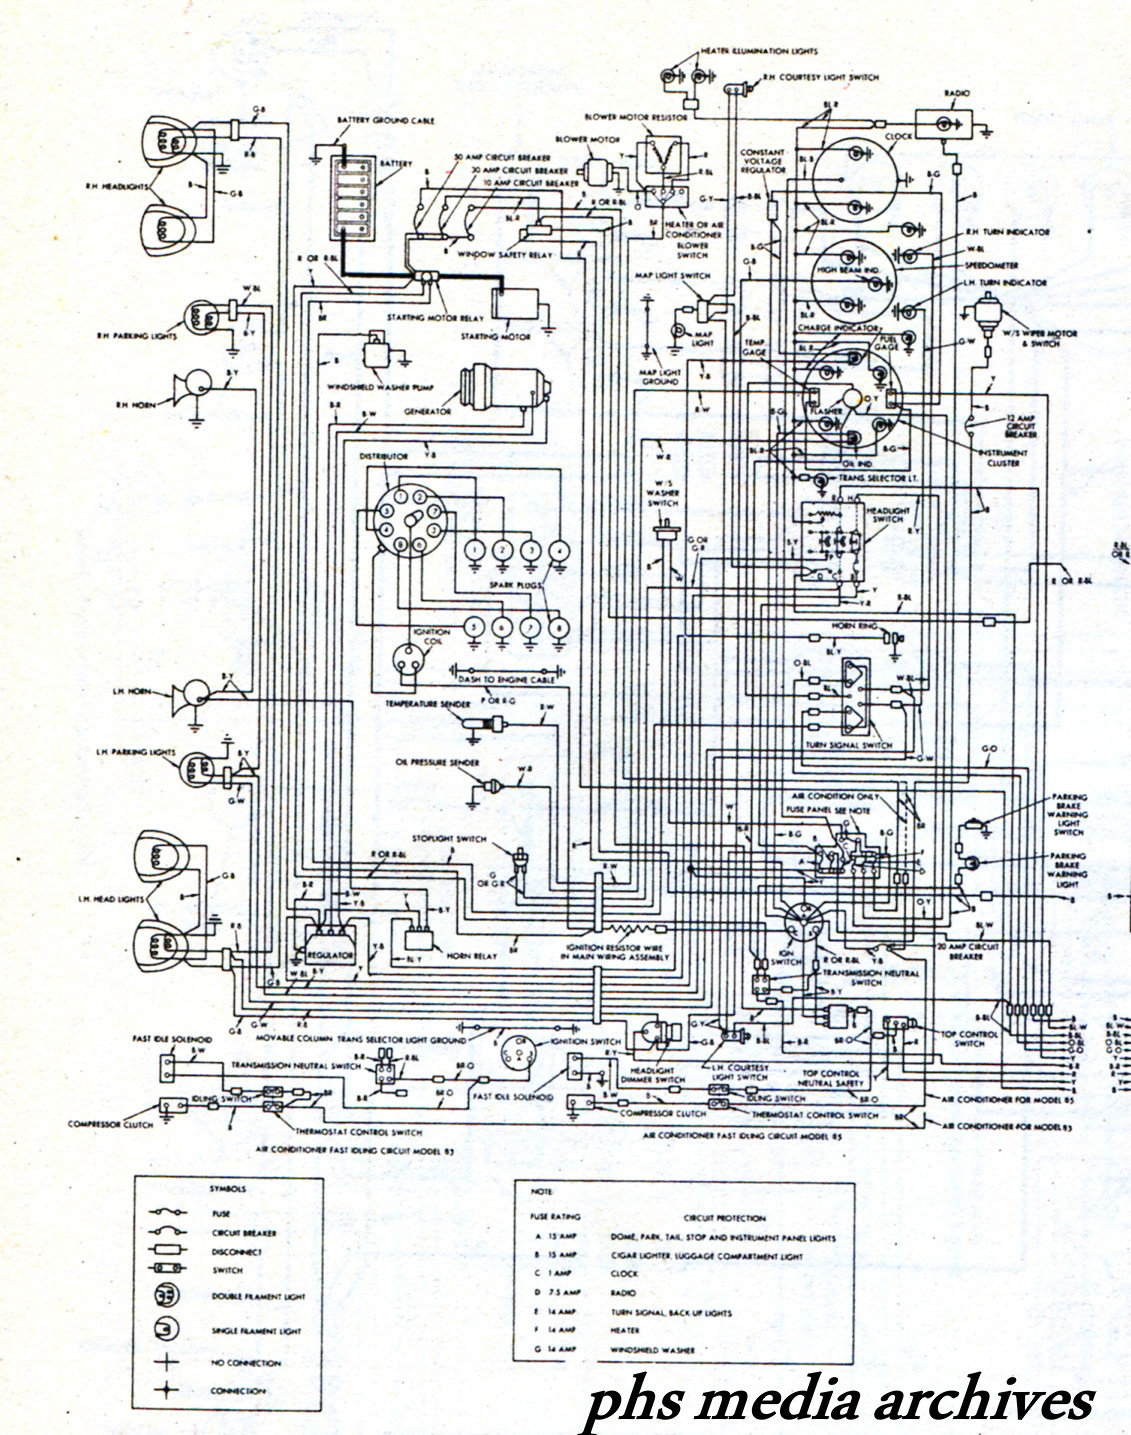 Wiring Diagram For 1963 Ford Thunderbird Convertible Top Layout 57 Tech Series 1961 Schematics Rh Phscollectorcarworld Blogspot Com 1957